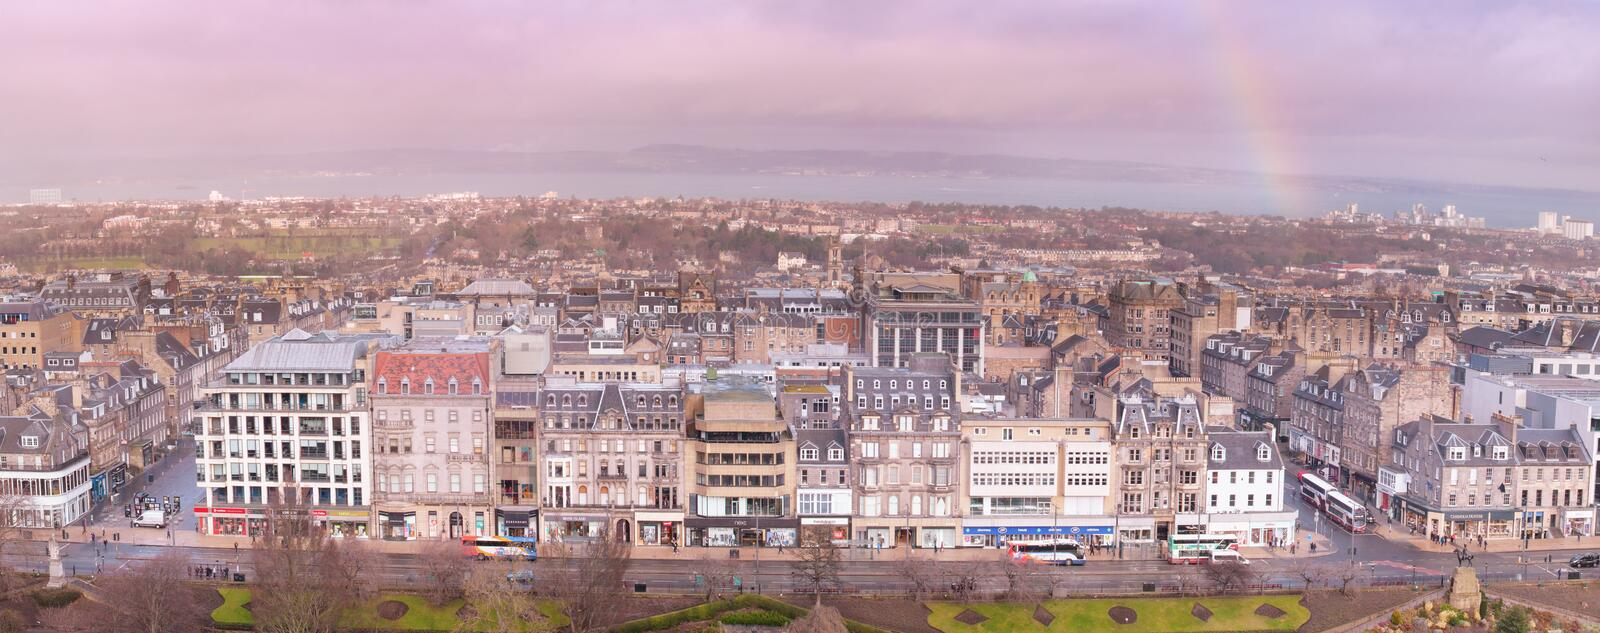 Panoramic view of Edinburgh with buildings and Victory Street stock photography